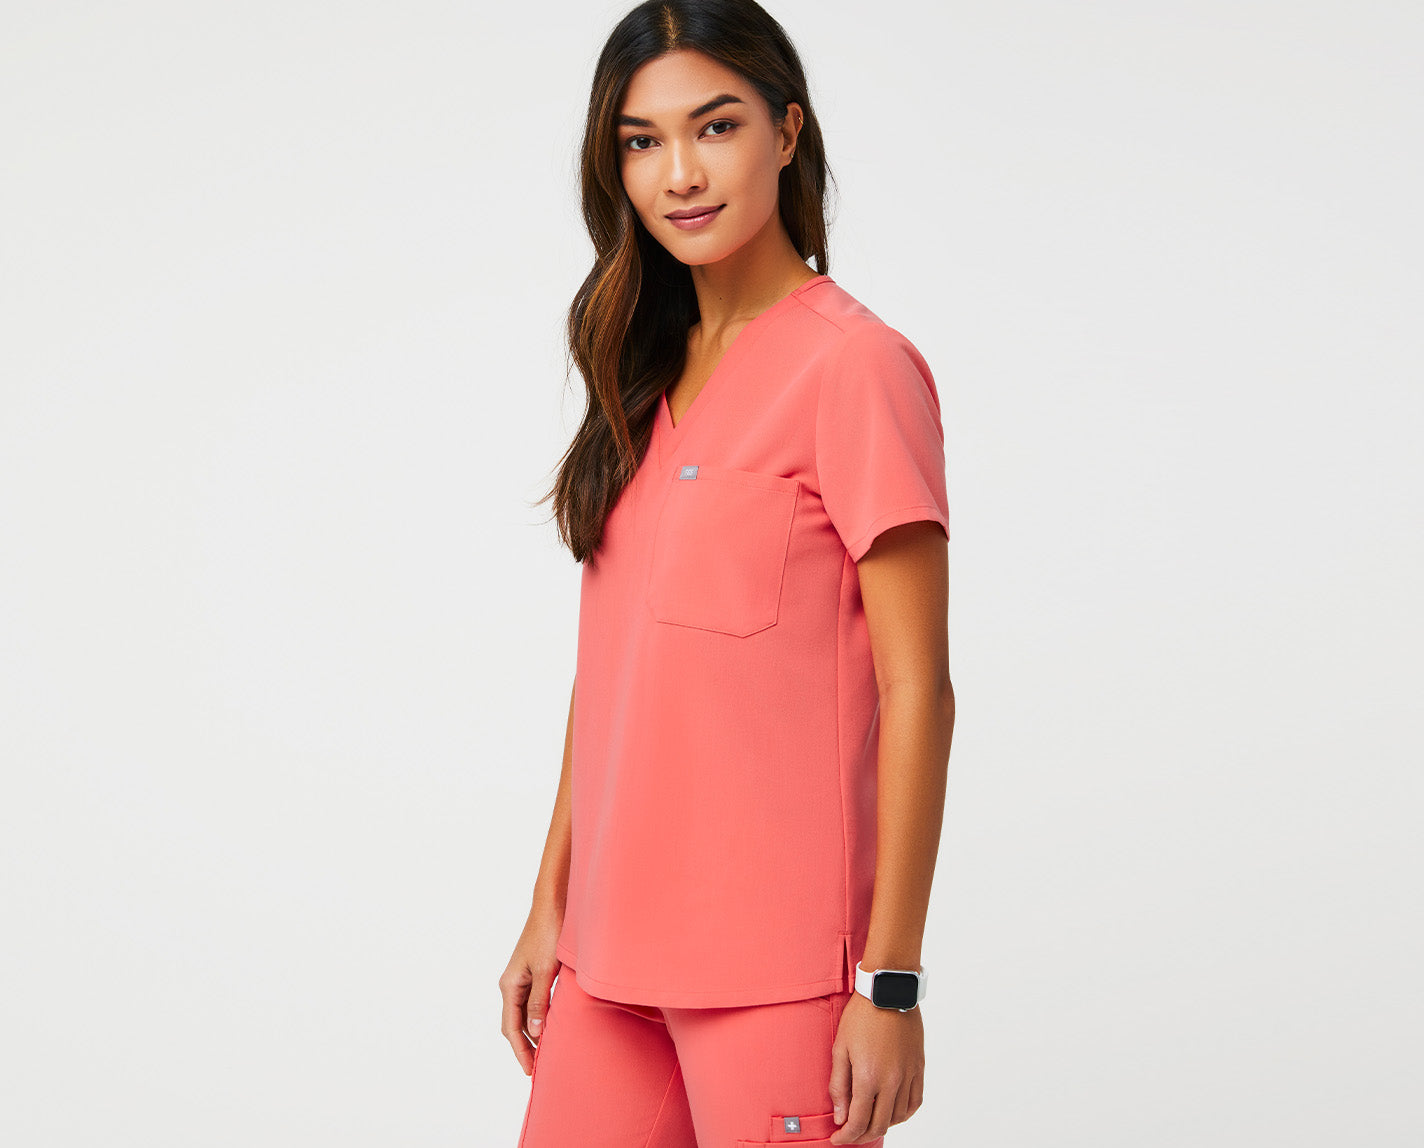 Simple and clean, but far from basic. The Catarina has a flattering V-neck, single chest pocket and slim (but not too slim) fit — plus it features our proprietary FIONx fabric. Ta-da.